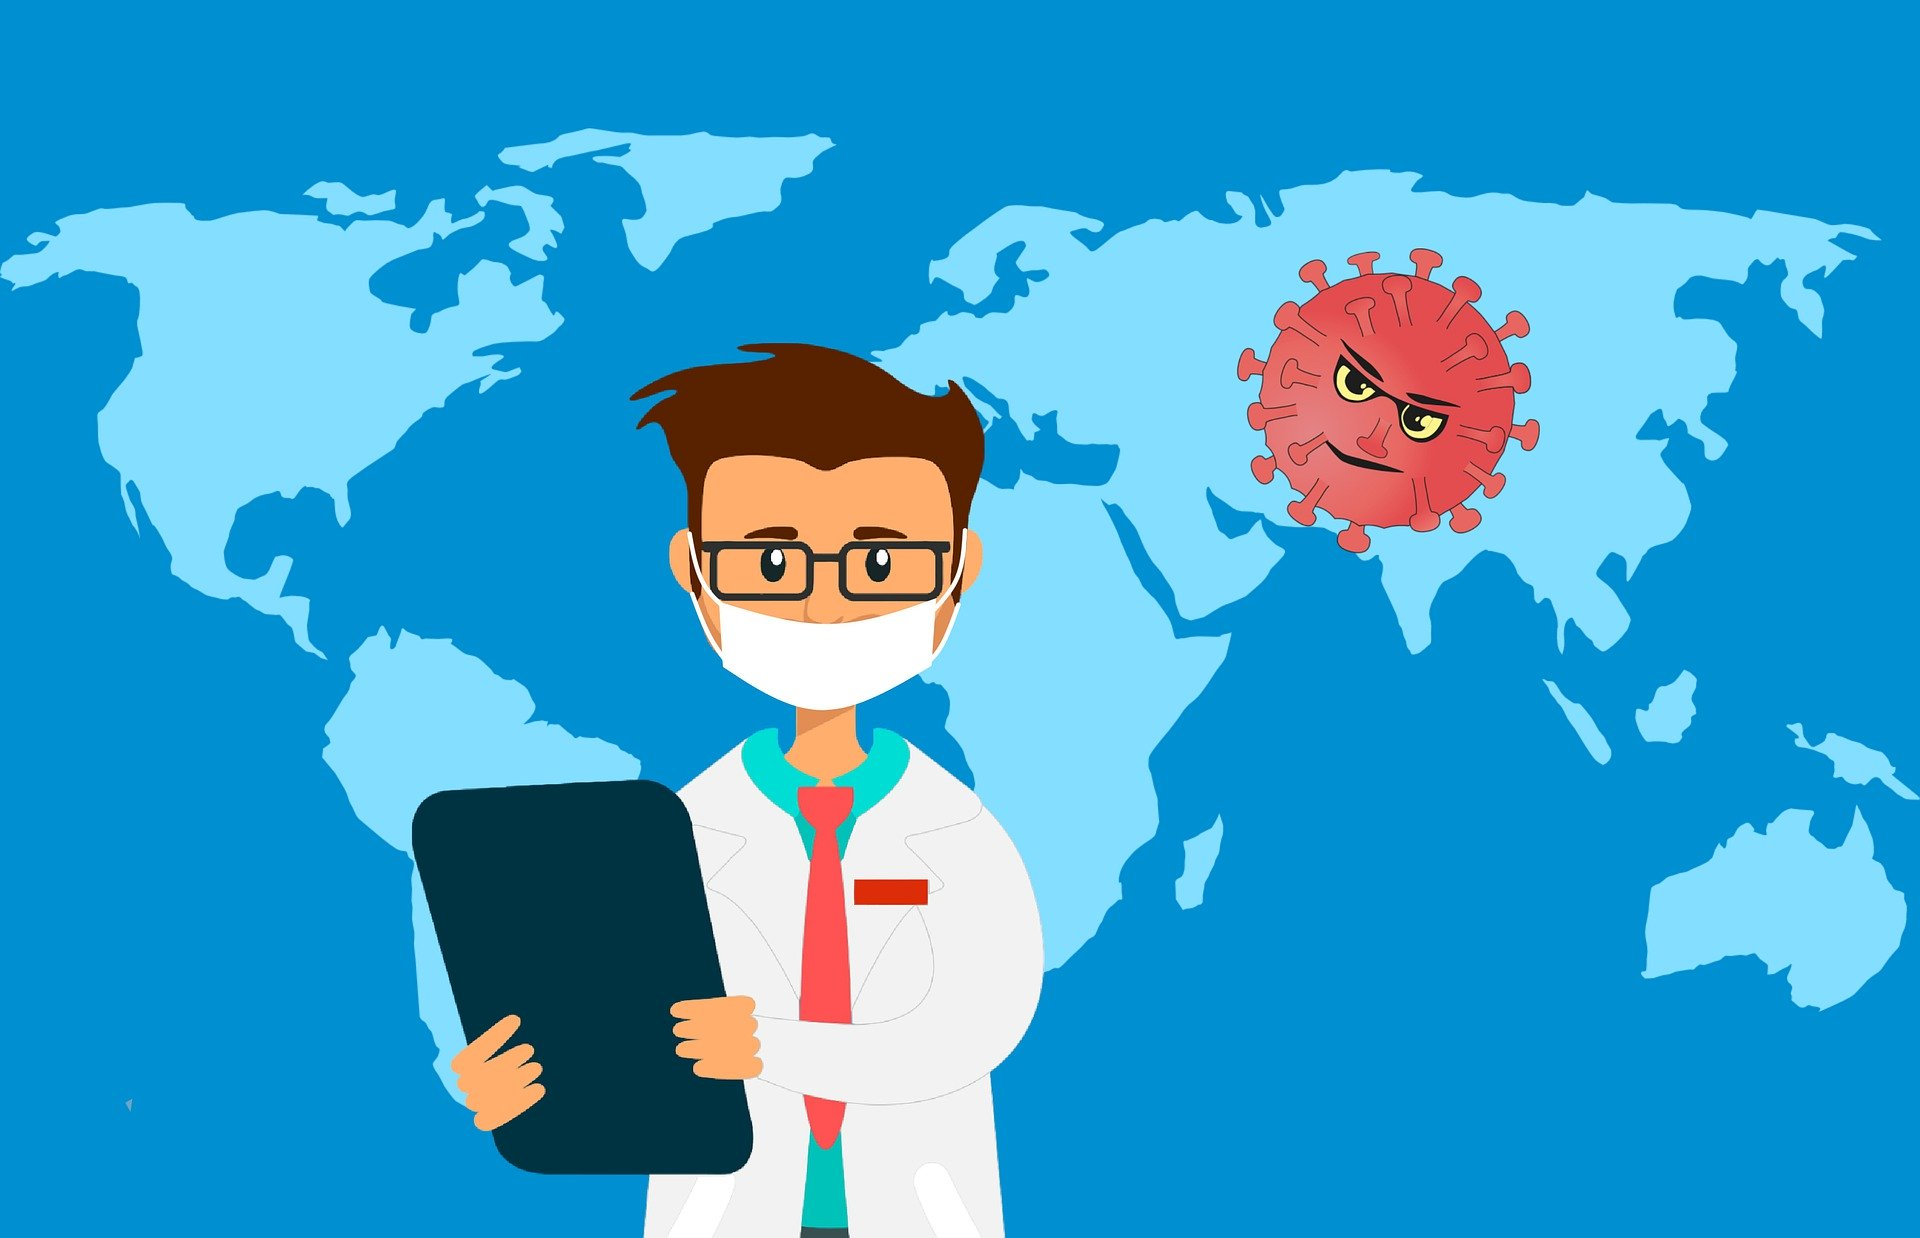 A Virus Is The Most Vital Building Block for Life!